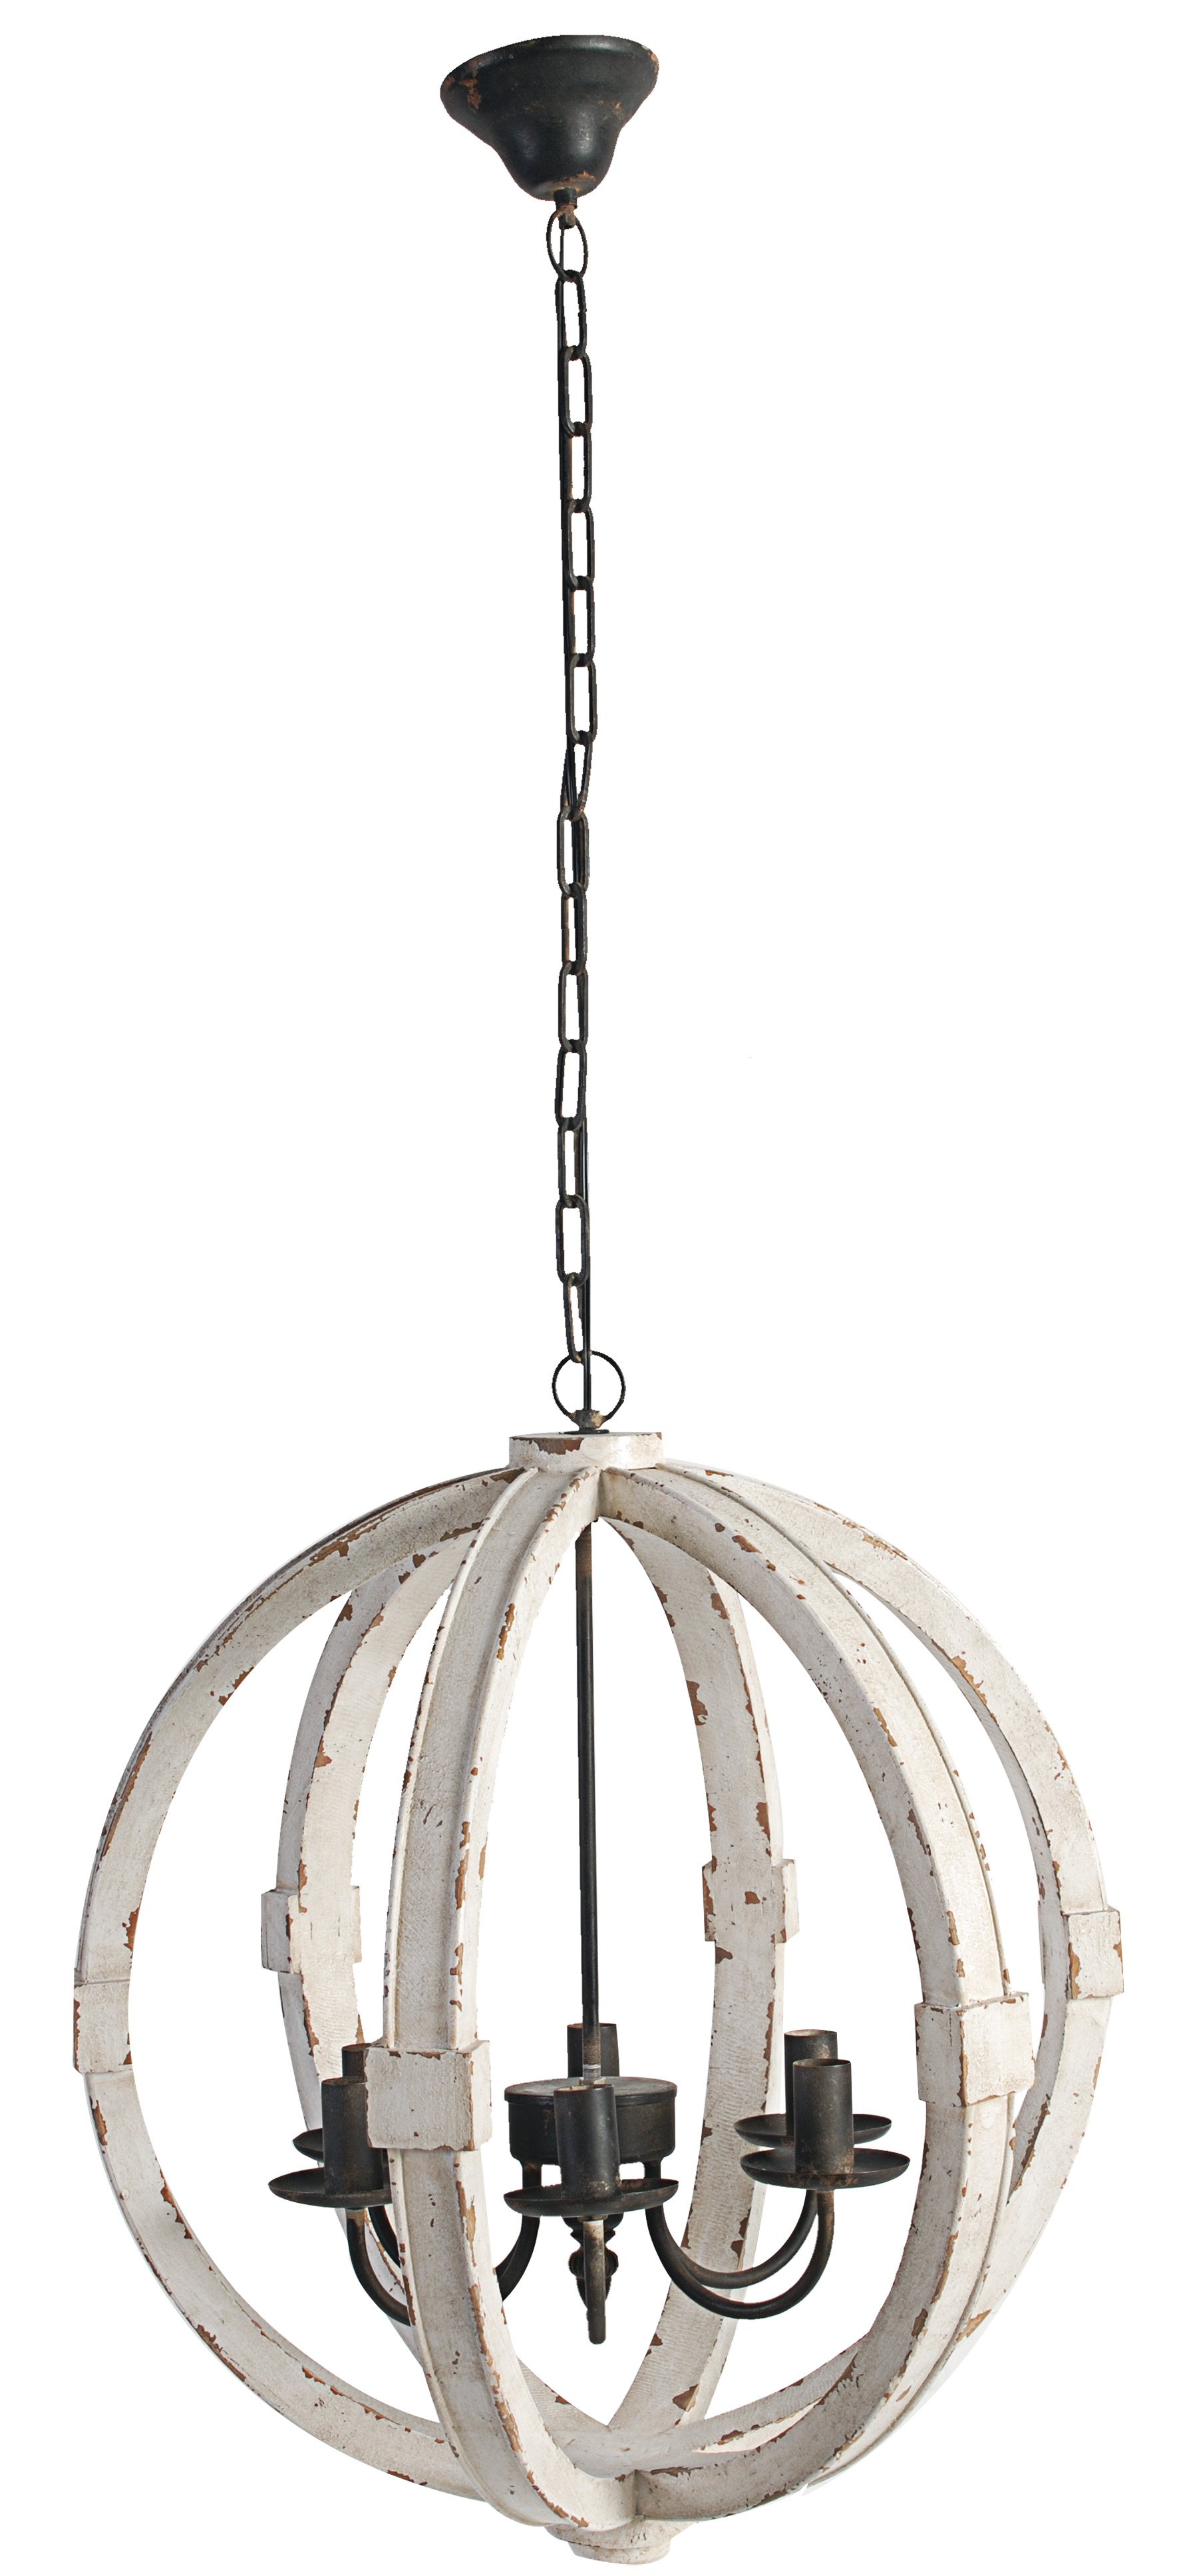 A&B Home Calder Wooden Chandelier, 22.5 by 26-Inch by A&B Home